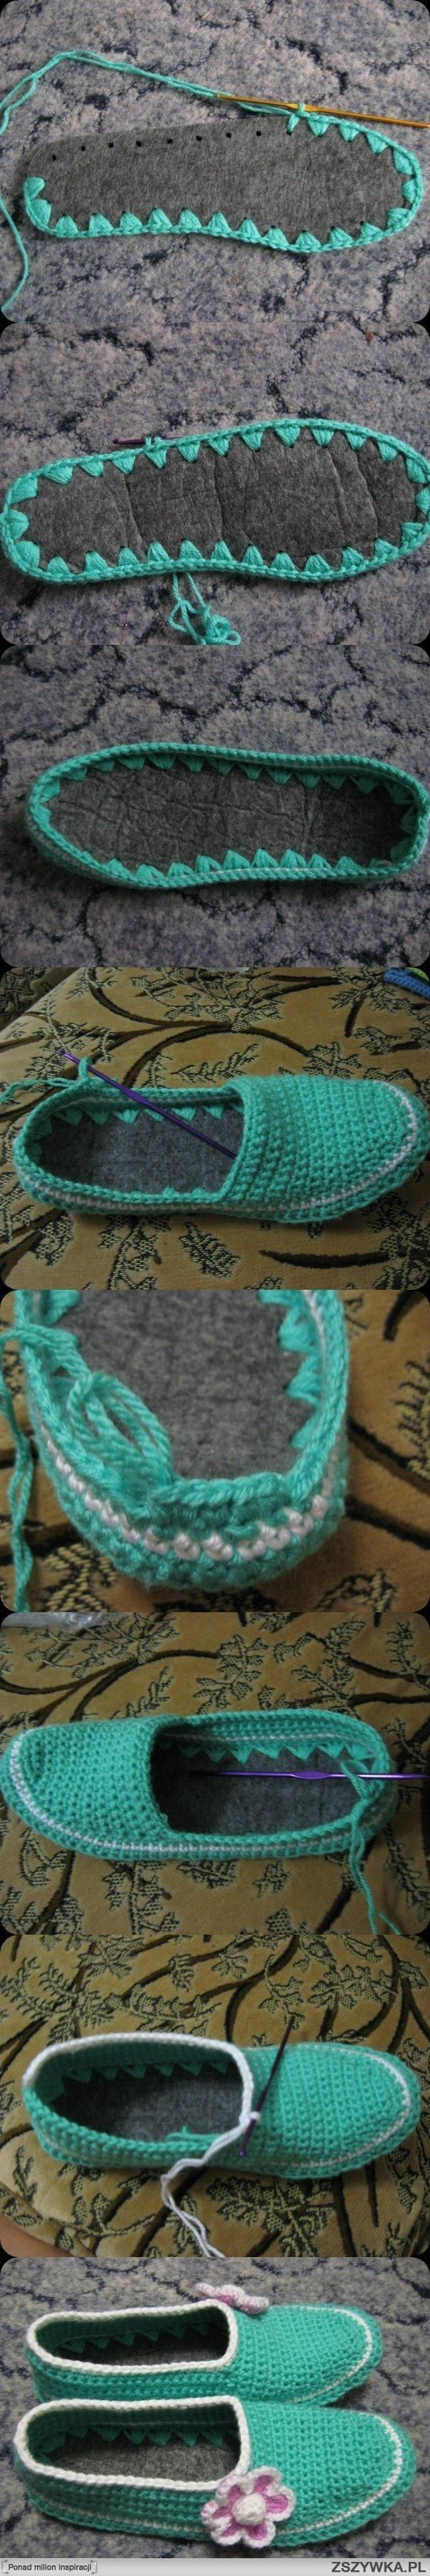 Find a felt shoe liner that fits your foot and use it as the base/sole of your slipper